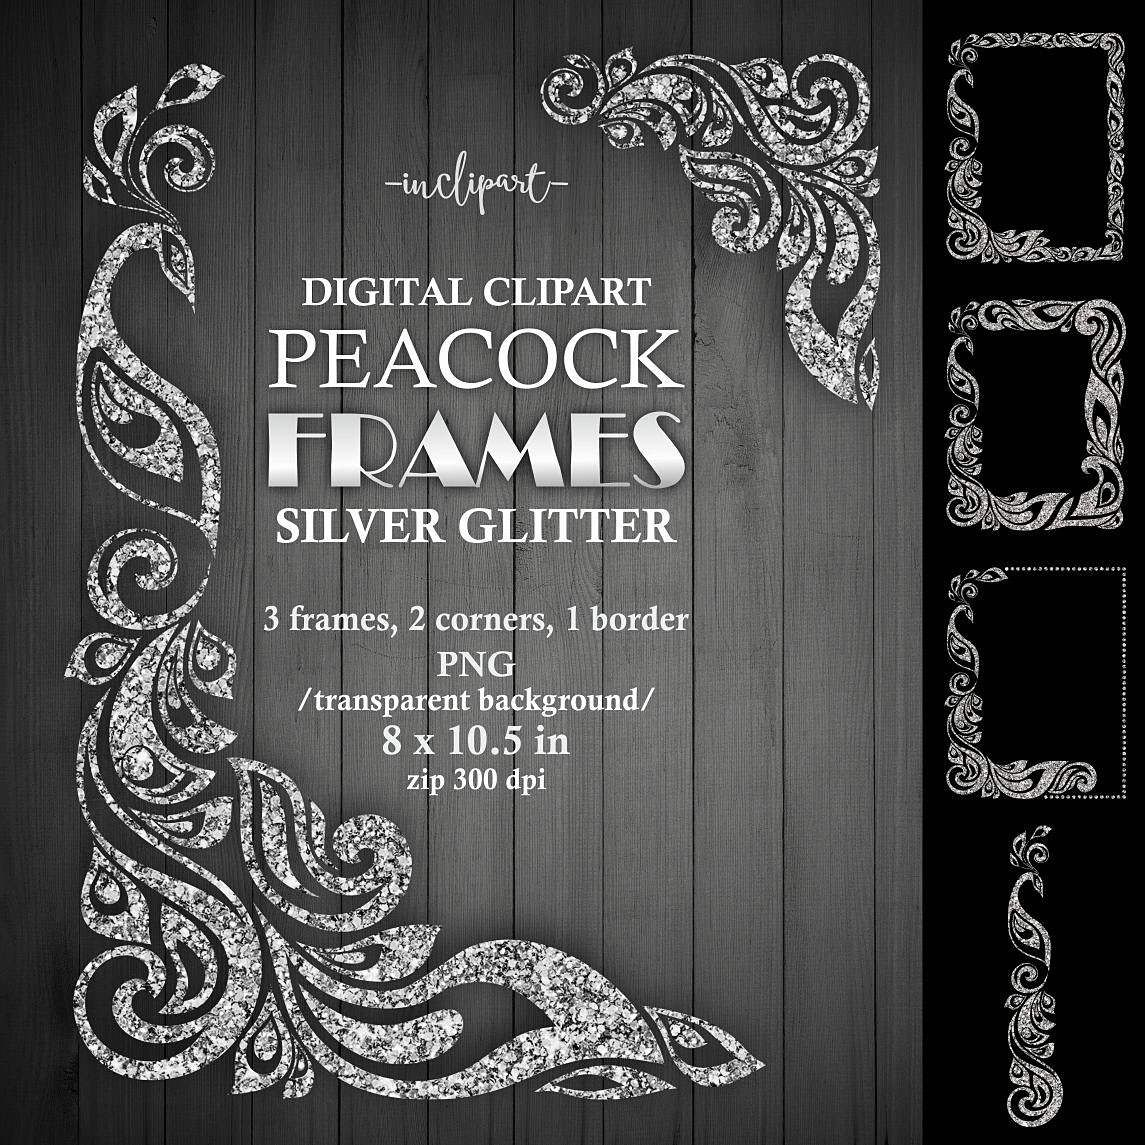 White glitter 3 clipart graphic royalty free stock Peacock frame clipart. Silver glitter frame, corner, border ... graphic royalty free stock